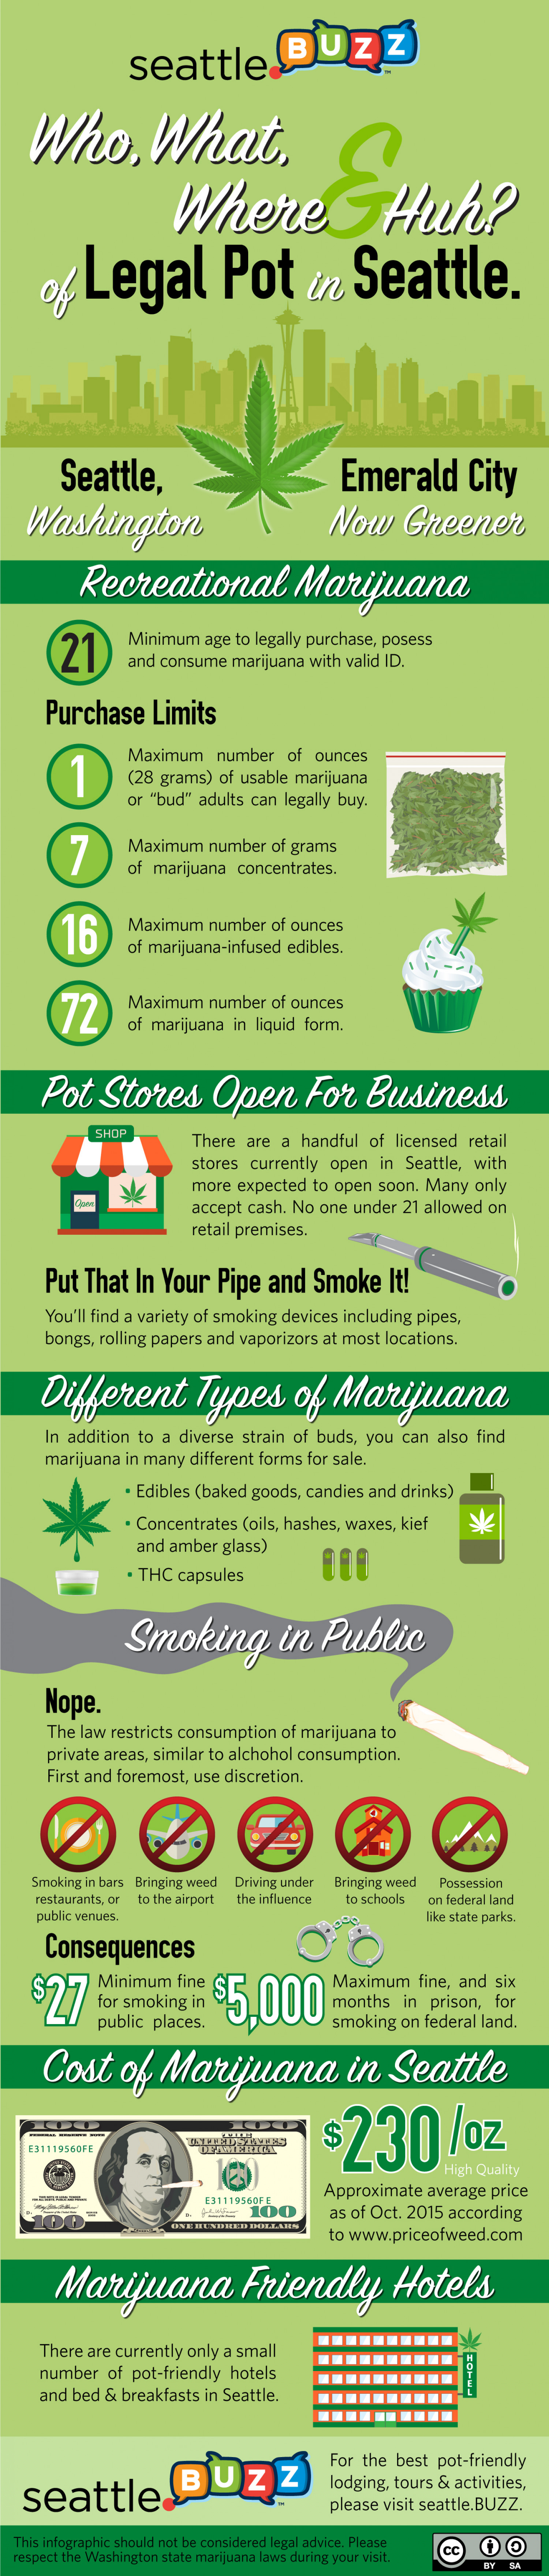 The Who, What, Where and Huh of Legal Pot in Seattle Infographic